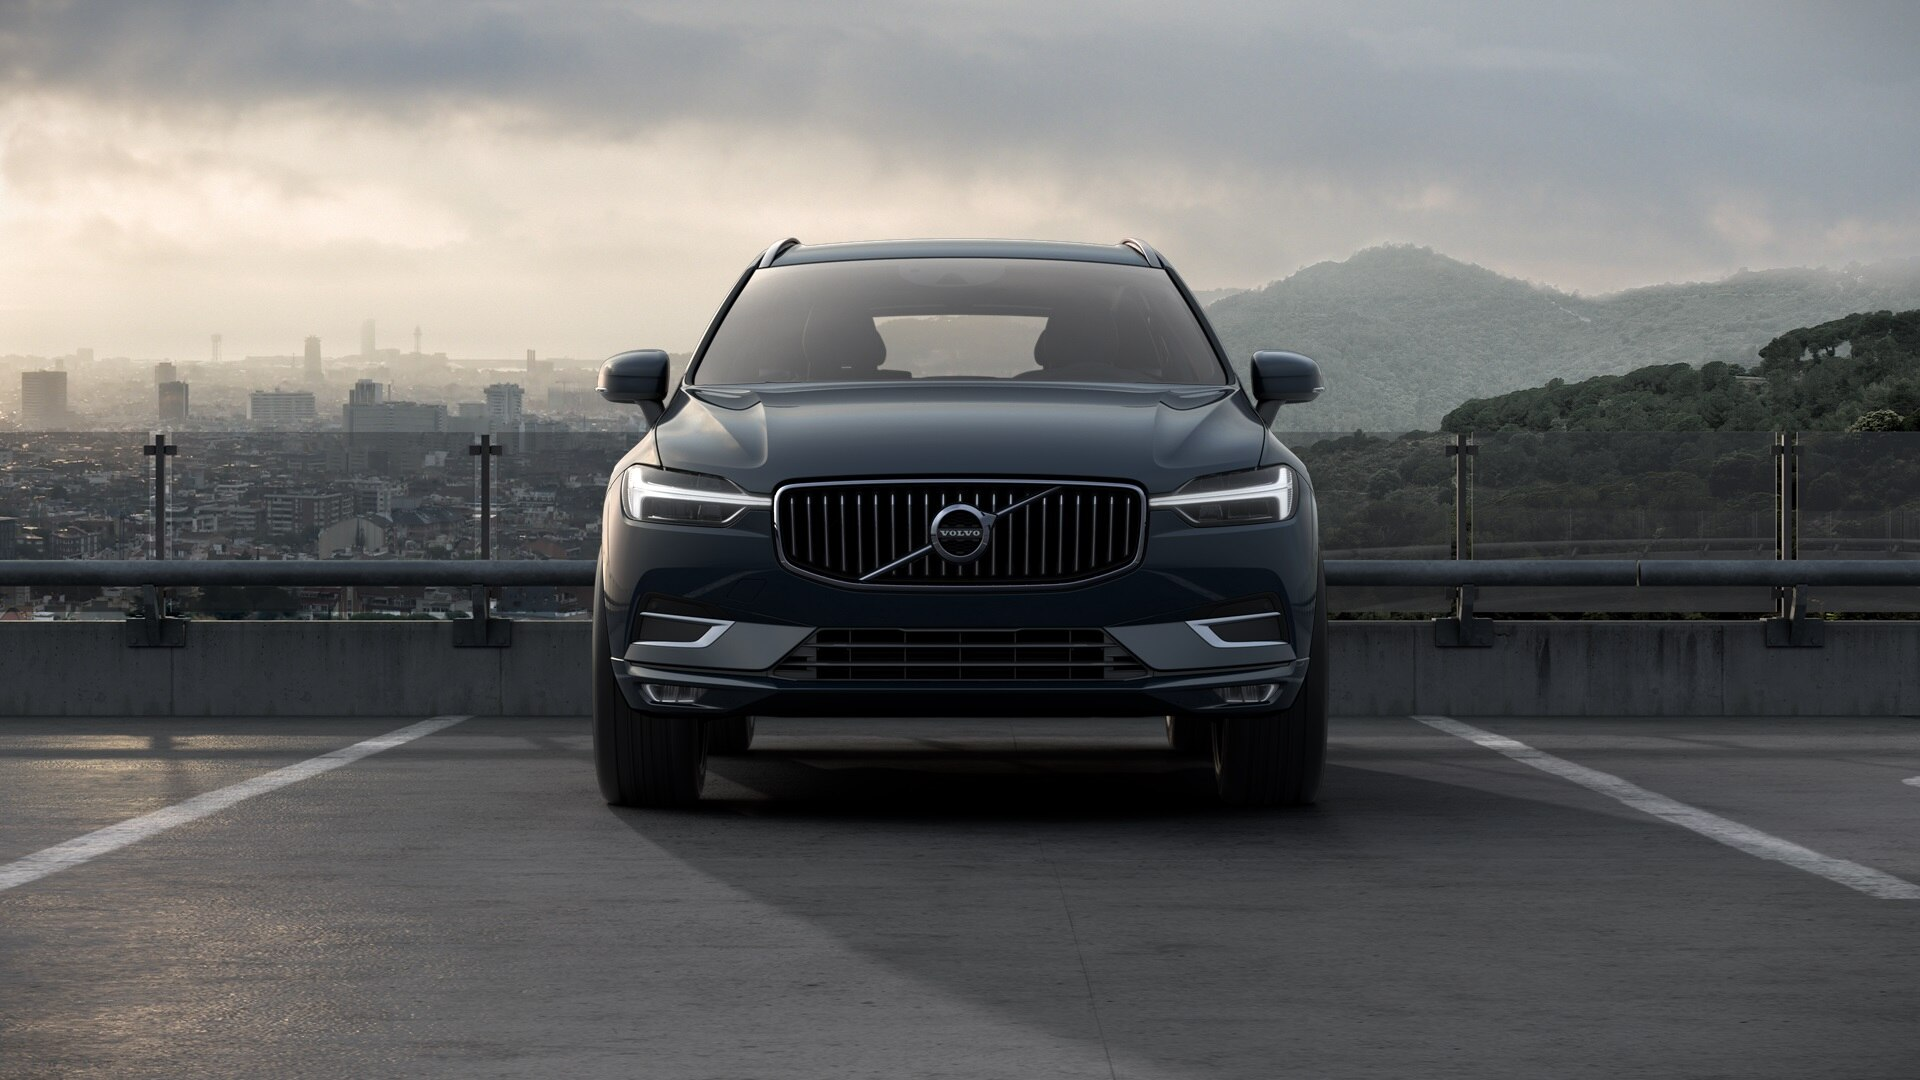 XC60 Inscription